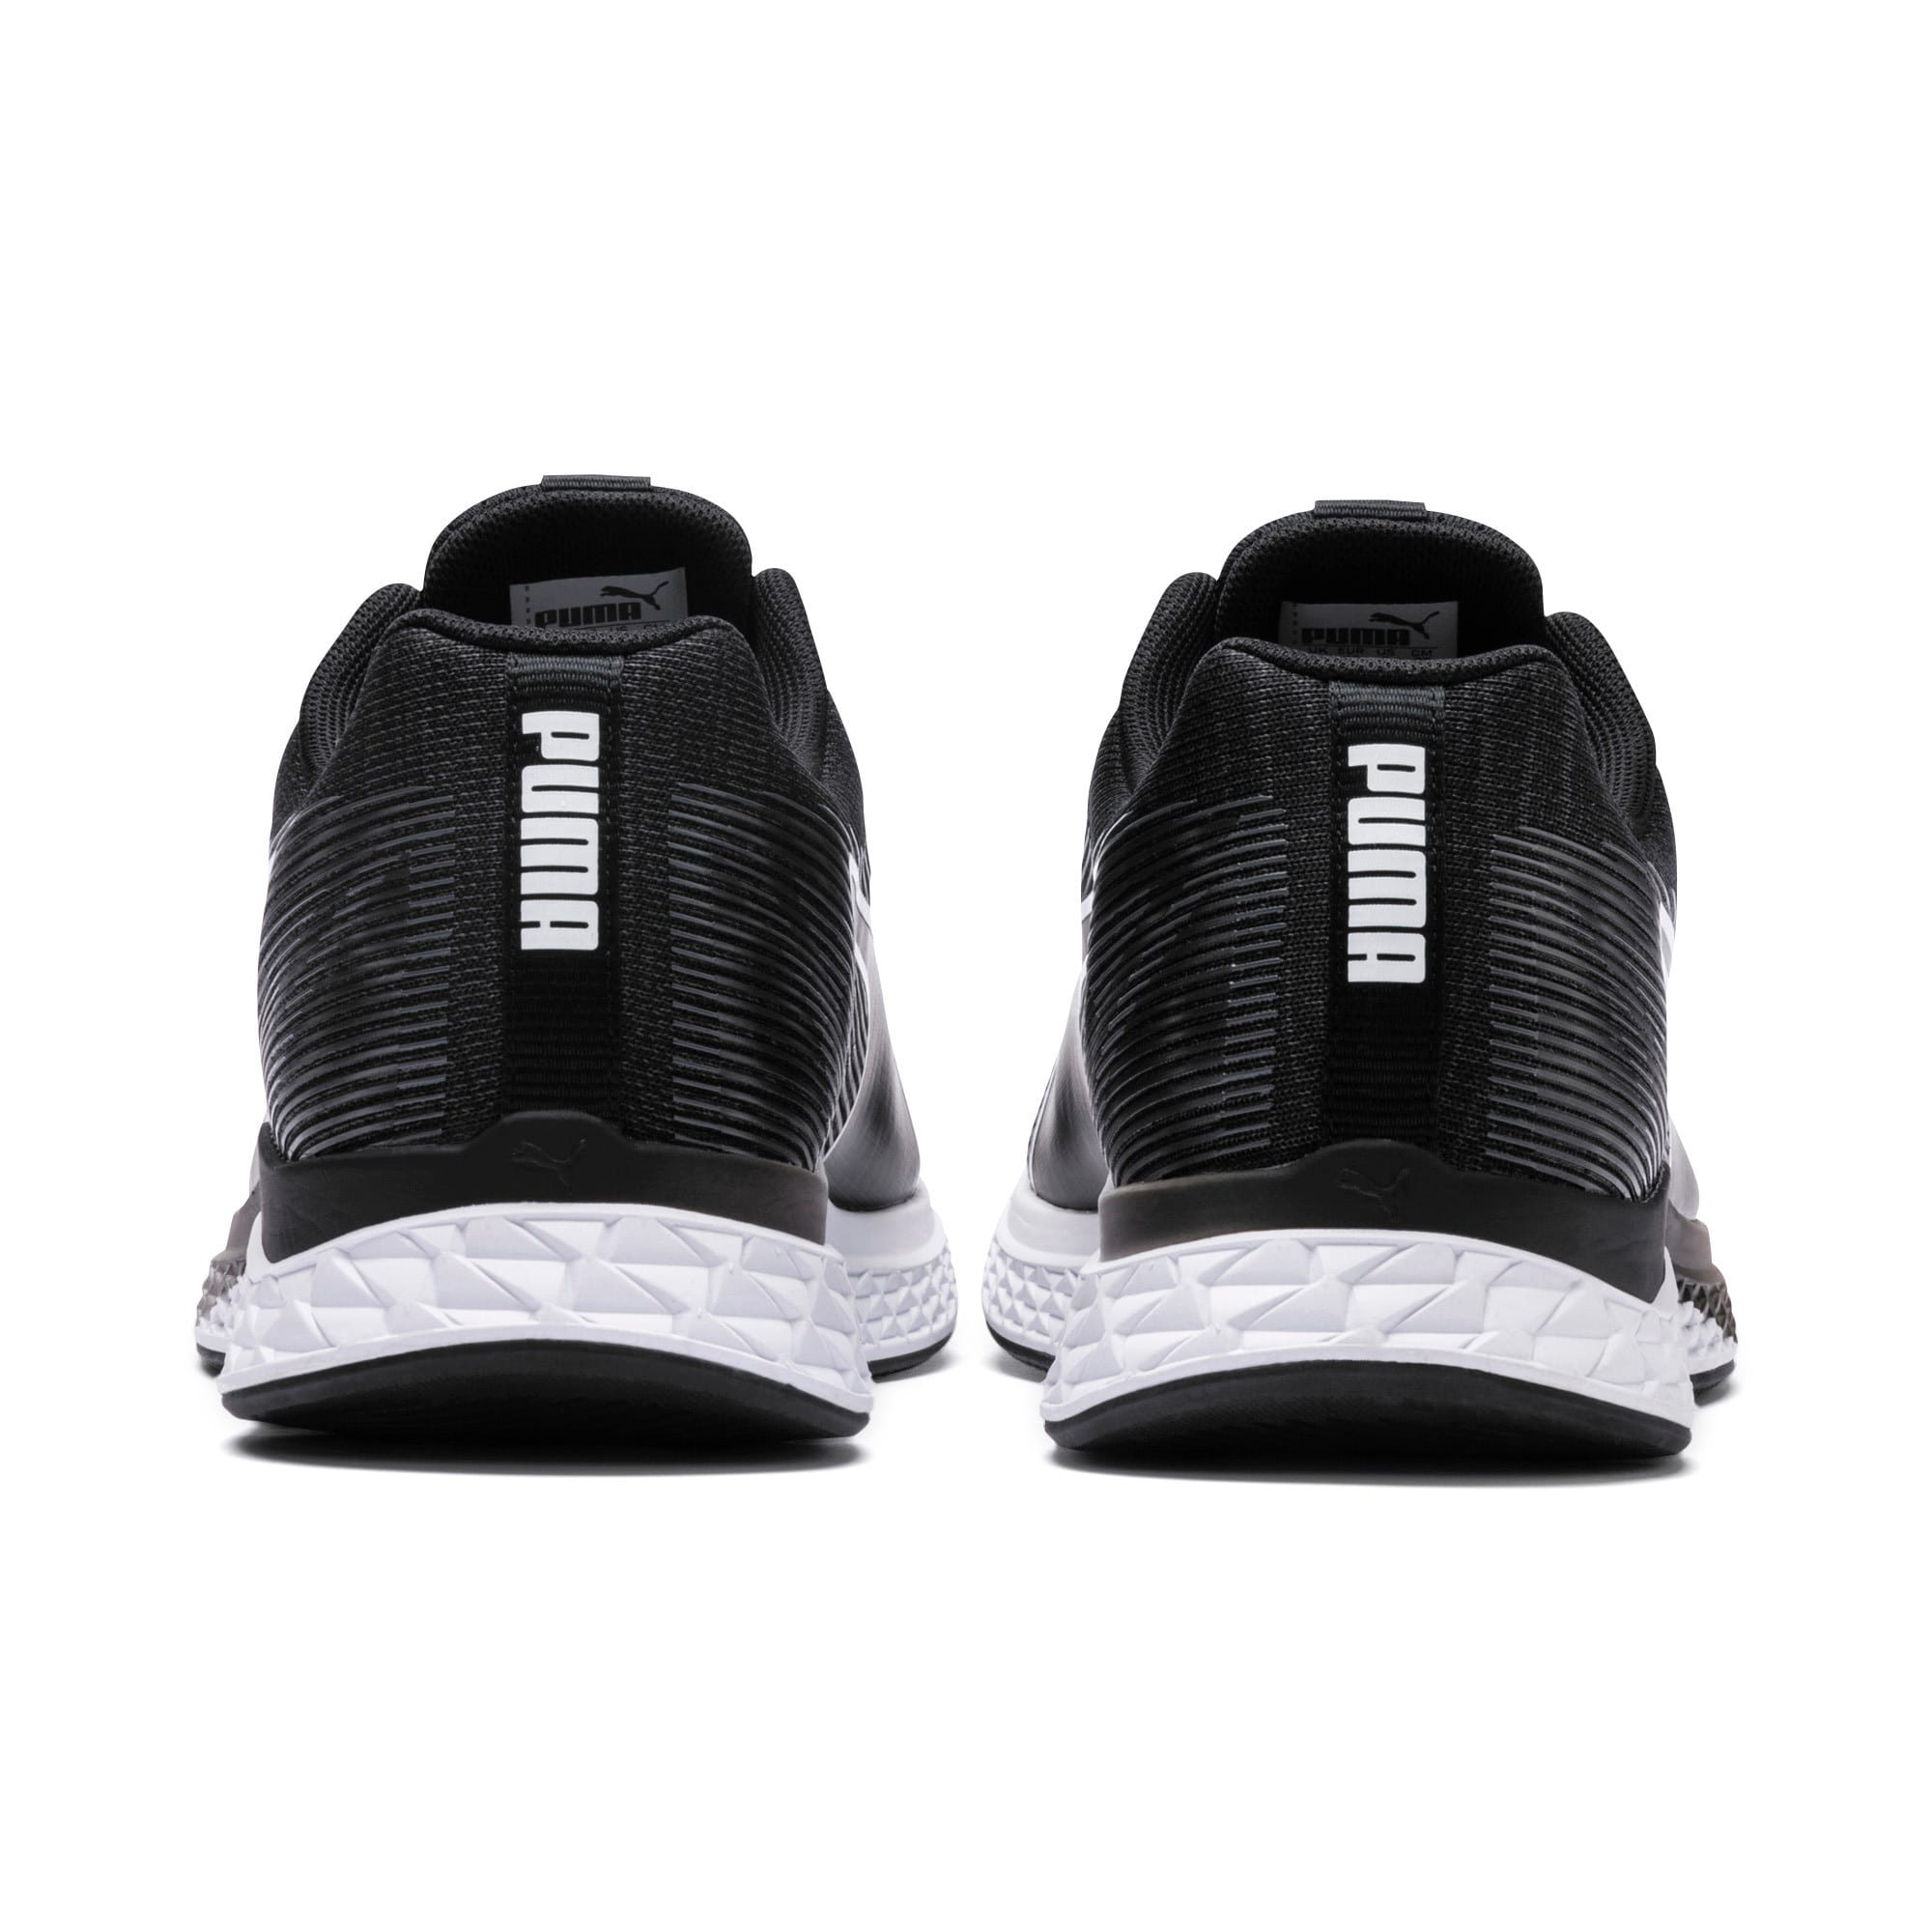 Imagen en miniatura 3 de Zapatillas de running SPEED SUTAMINA, Puma Black-Puma White, mediana